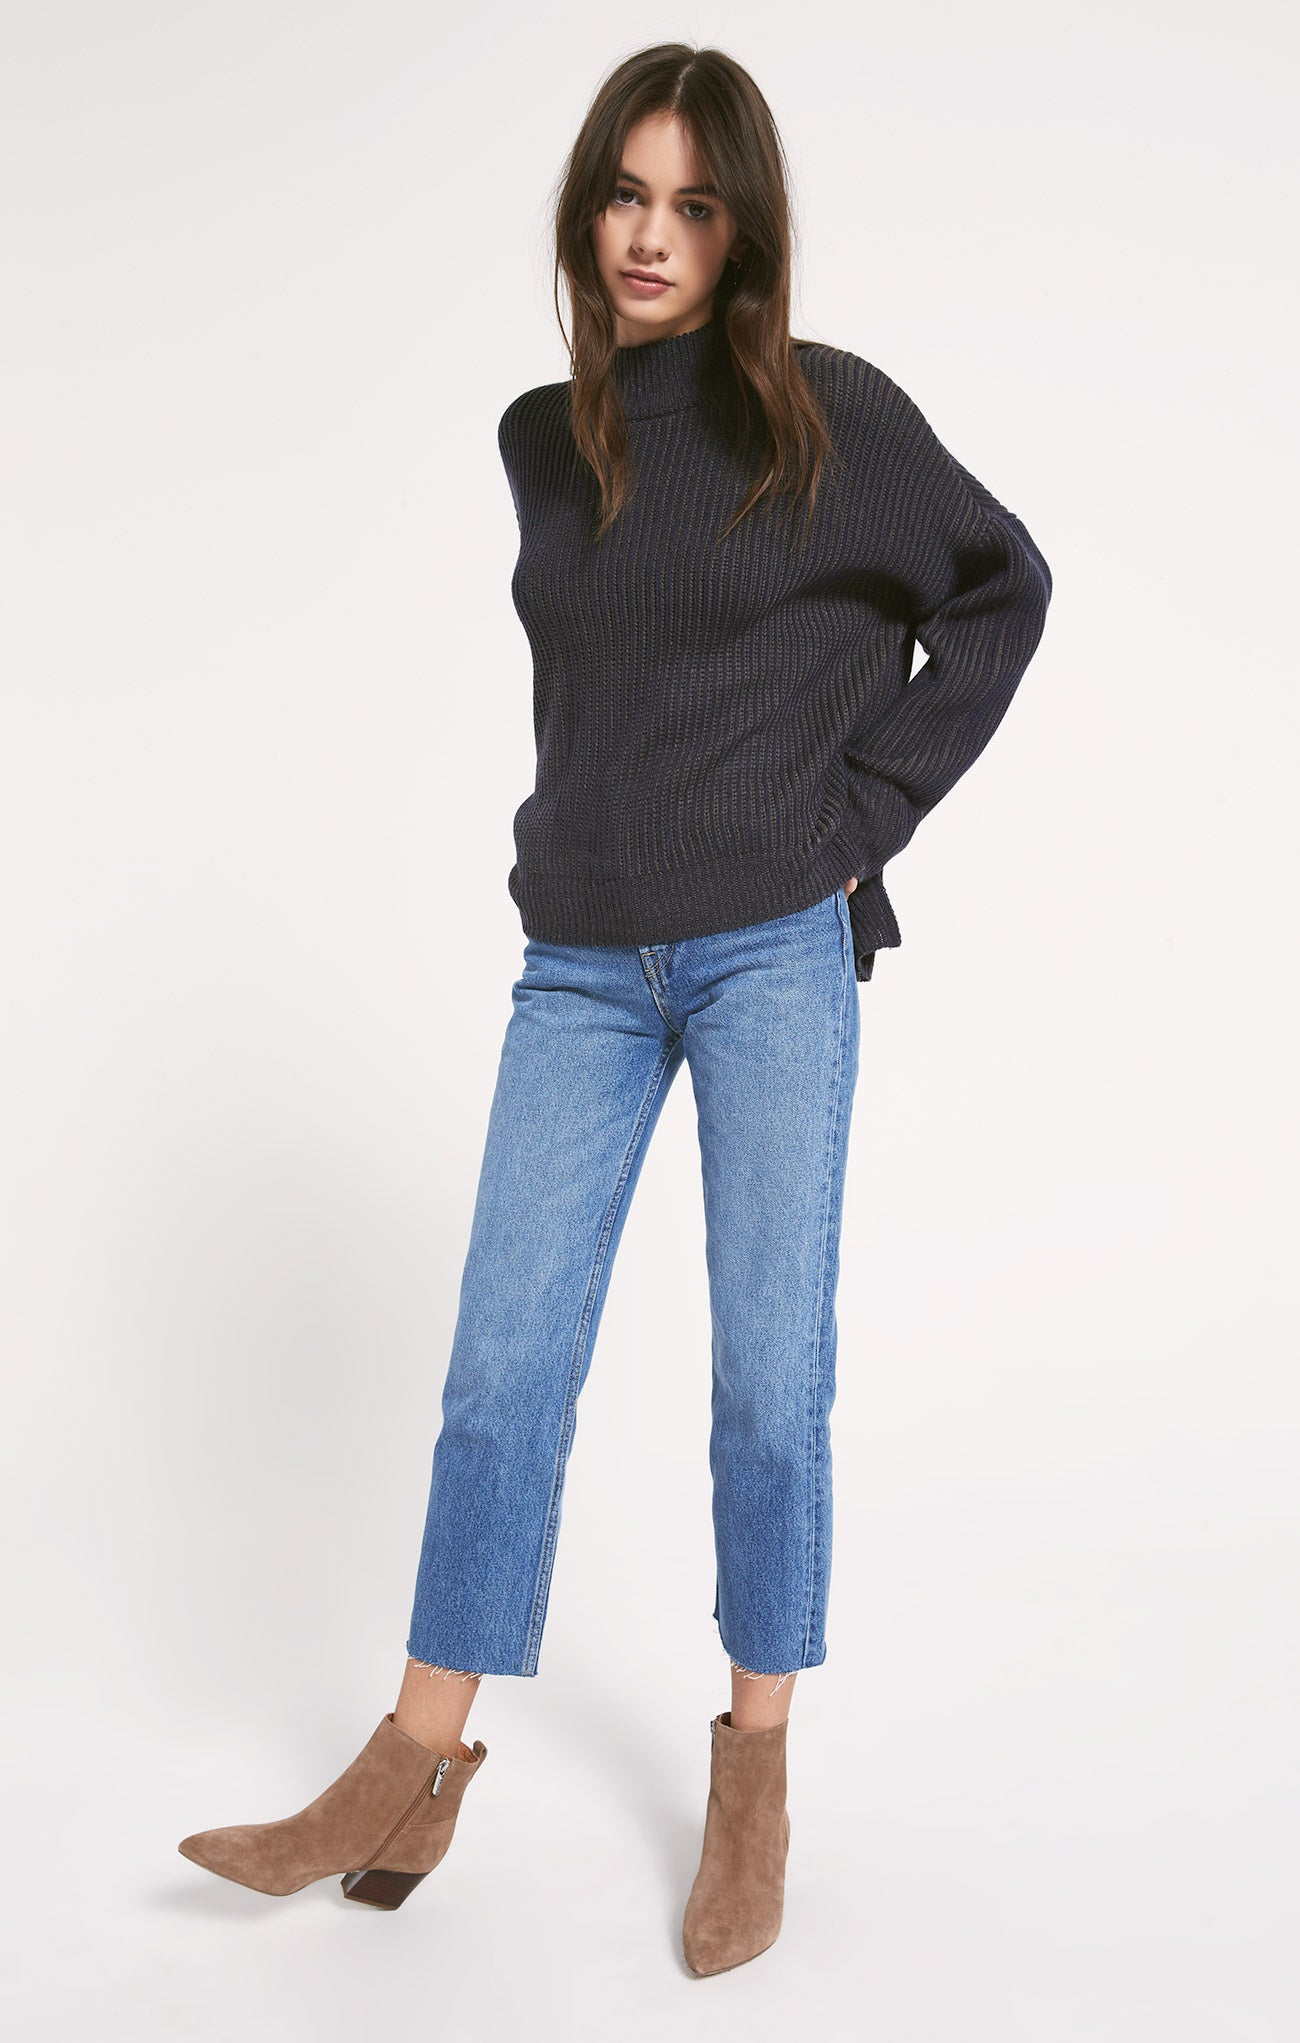 Sweaters Irwin Sweater by Rag Poets Irwin Sweater by Rag Poets